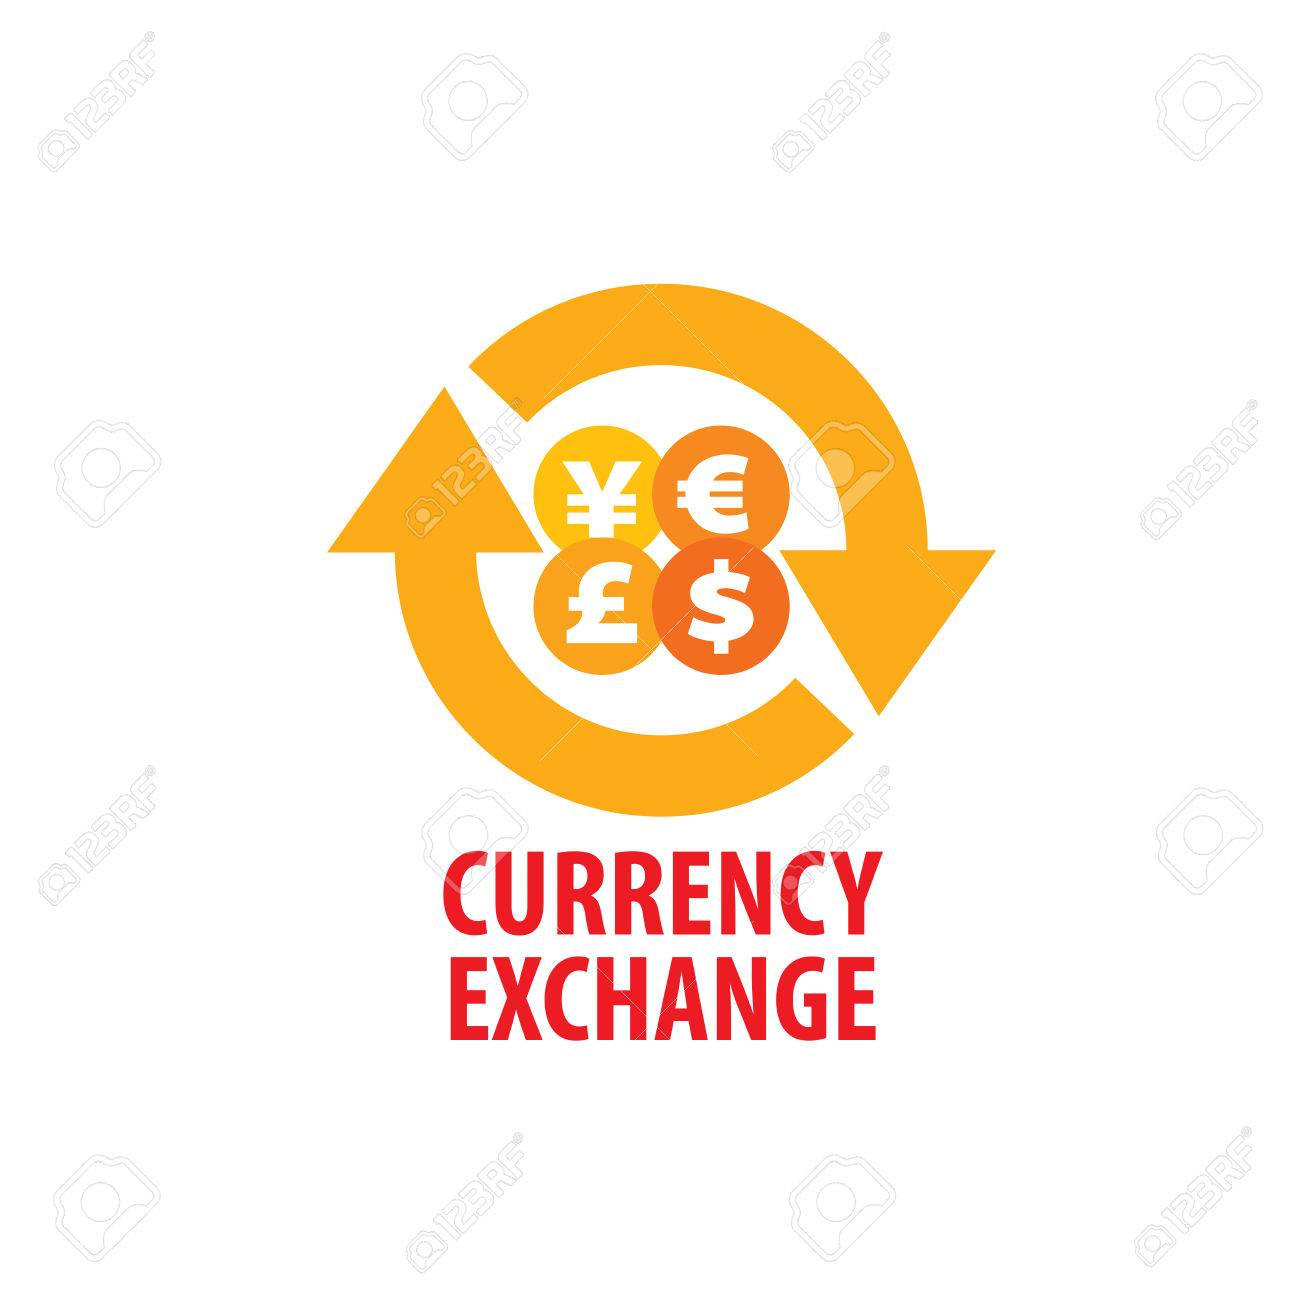 currency exchange logo